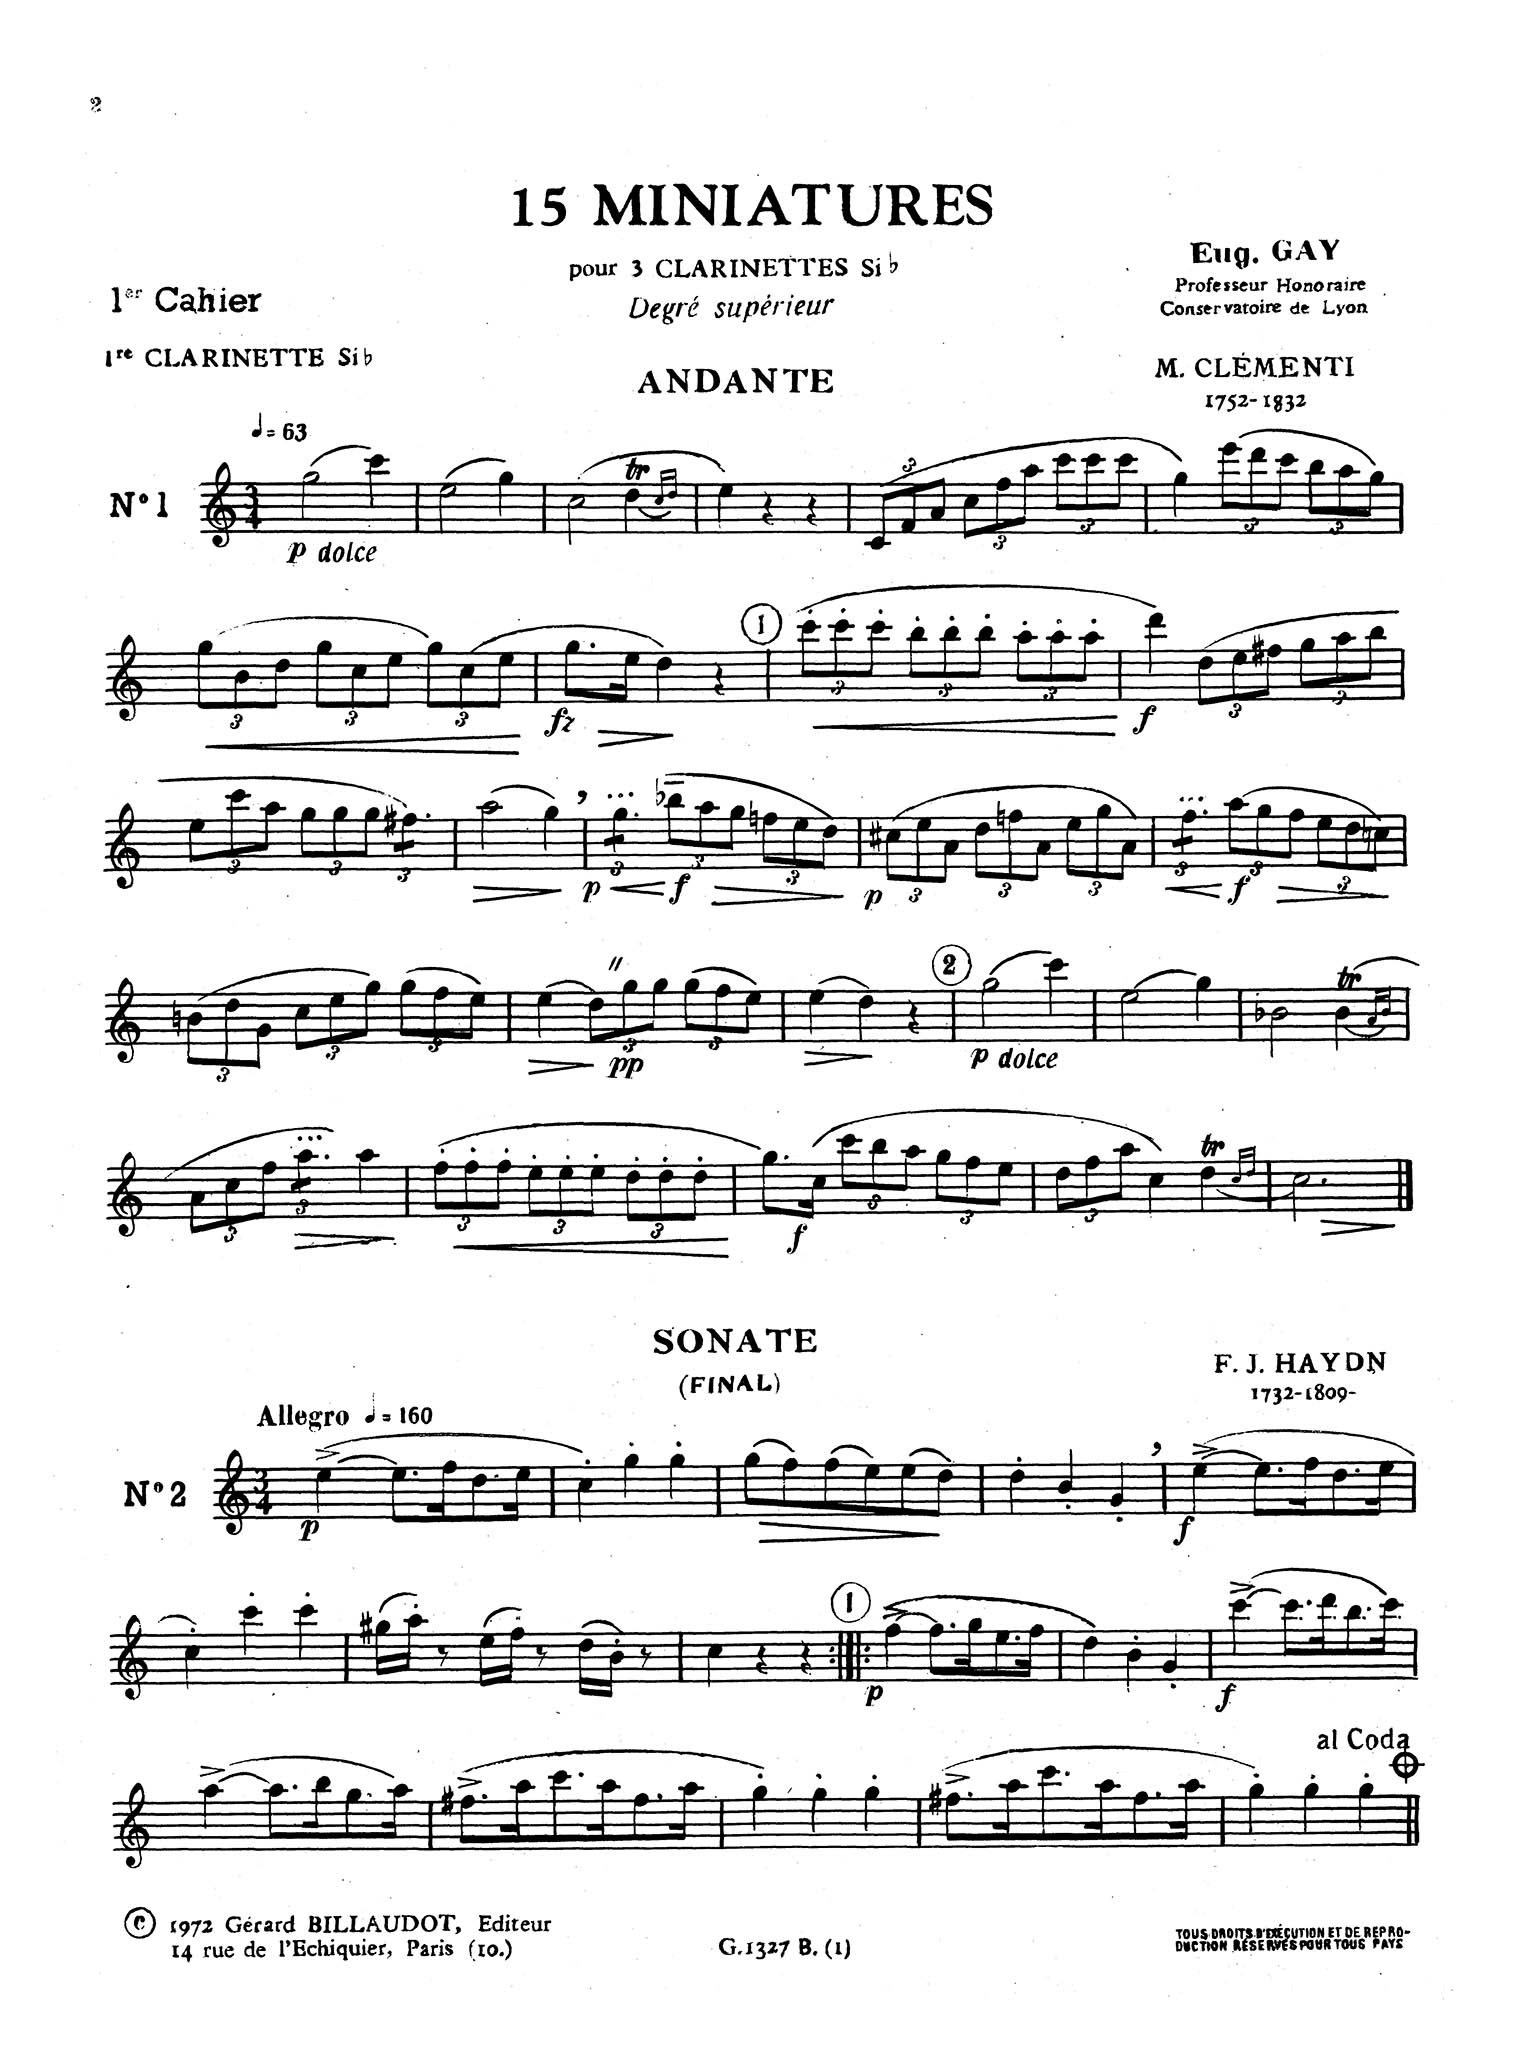 15 Miniatures for 3 B-flat Clarinets, Book 1 First Clarinet part